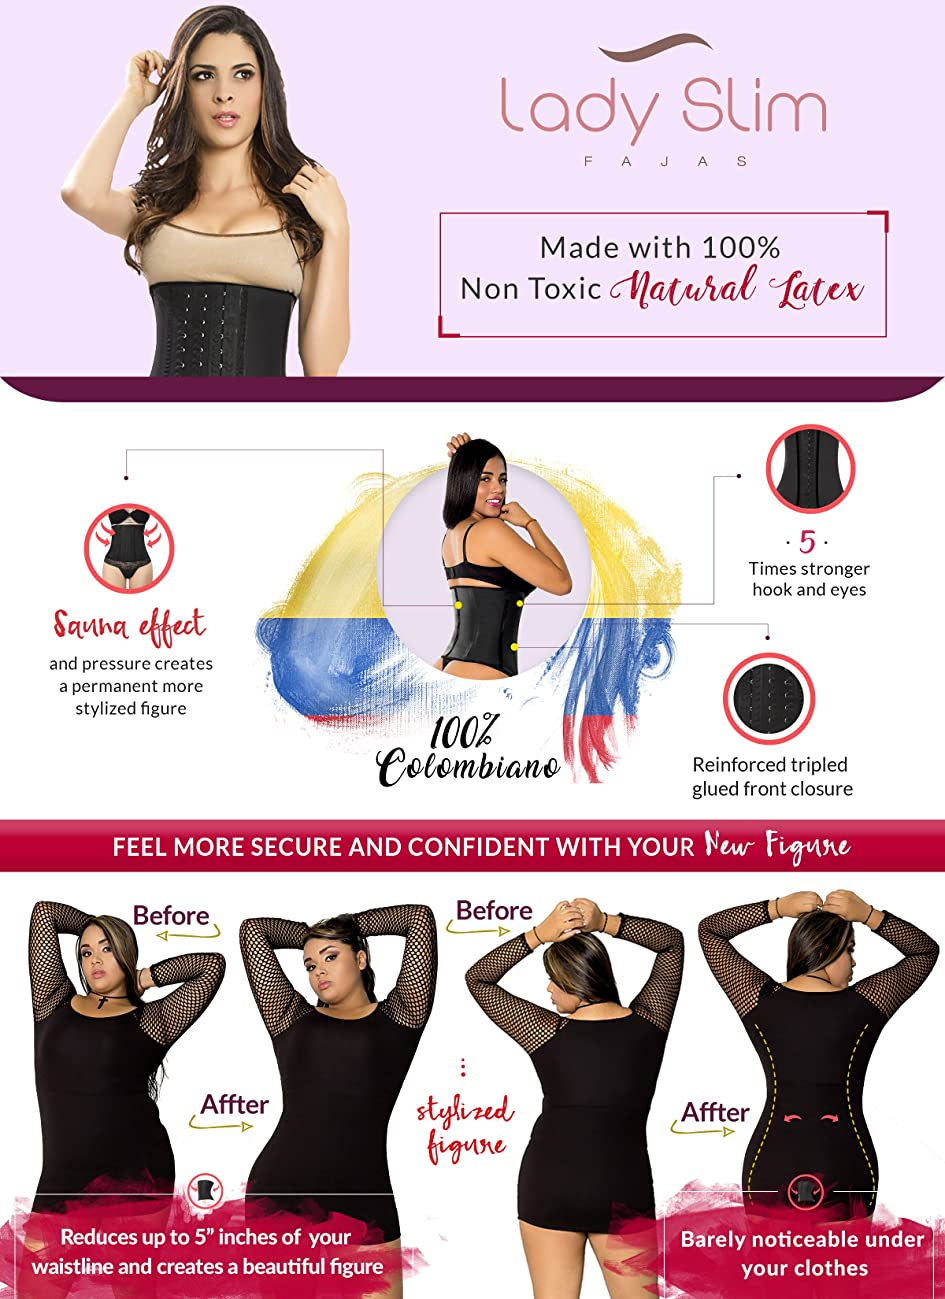 Lady Slim Fajas Colombianas Reductoras Y Moldeadoras para Mujer Latex Waist Trainer Cincher Shaper for Women 8